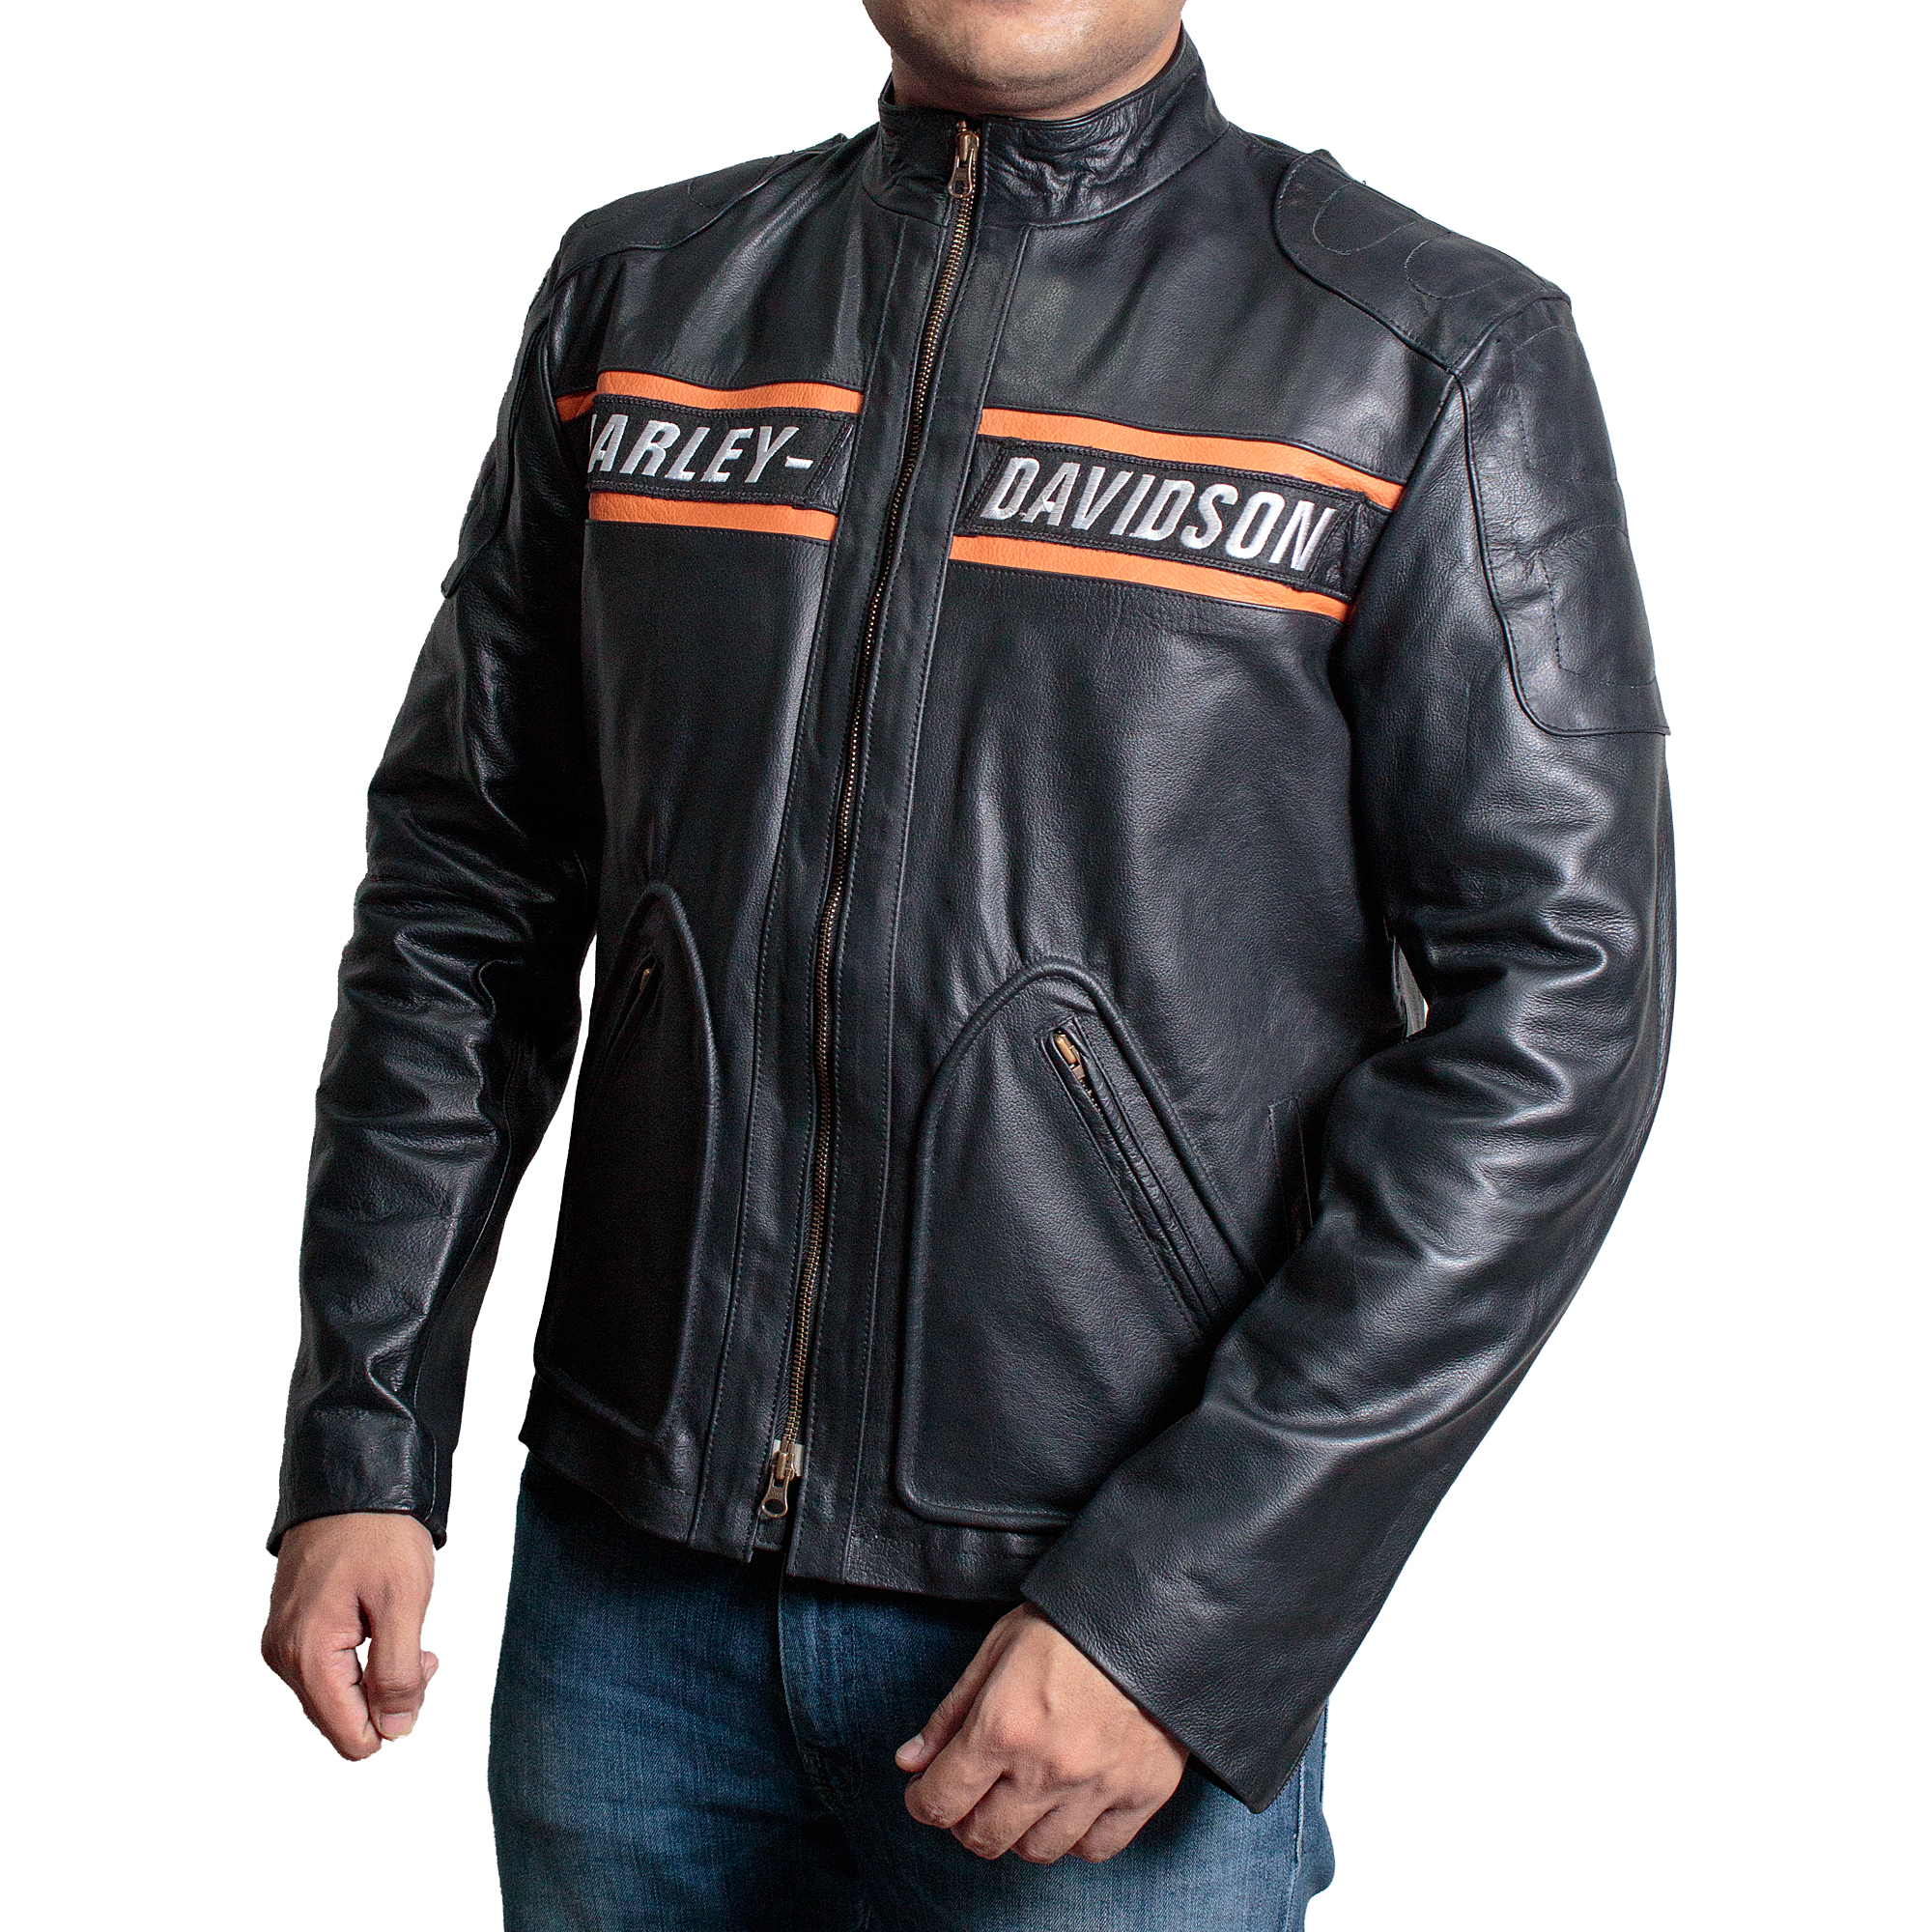 Bill Goldberg Harley Davidson Black Biker Leather Jacket